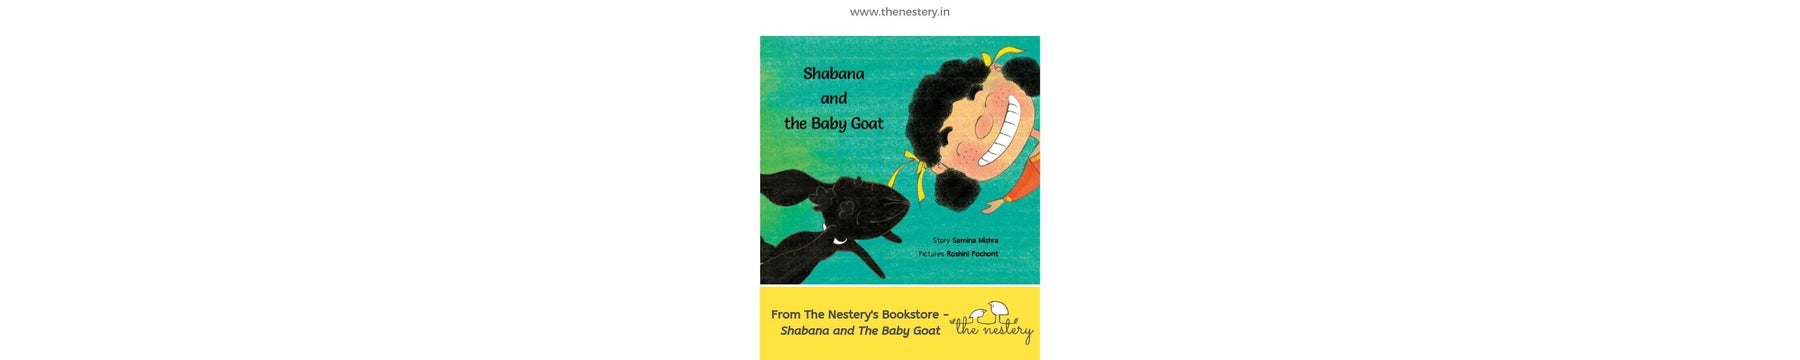 Book Review - Shabana and The Baby Goat